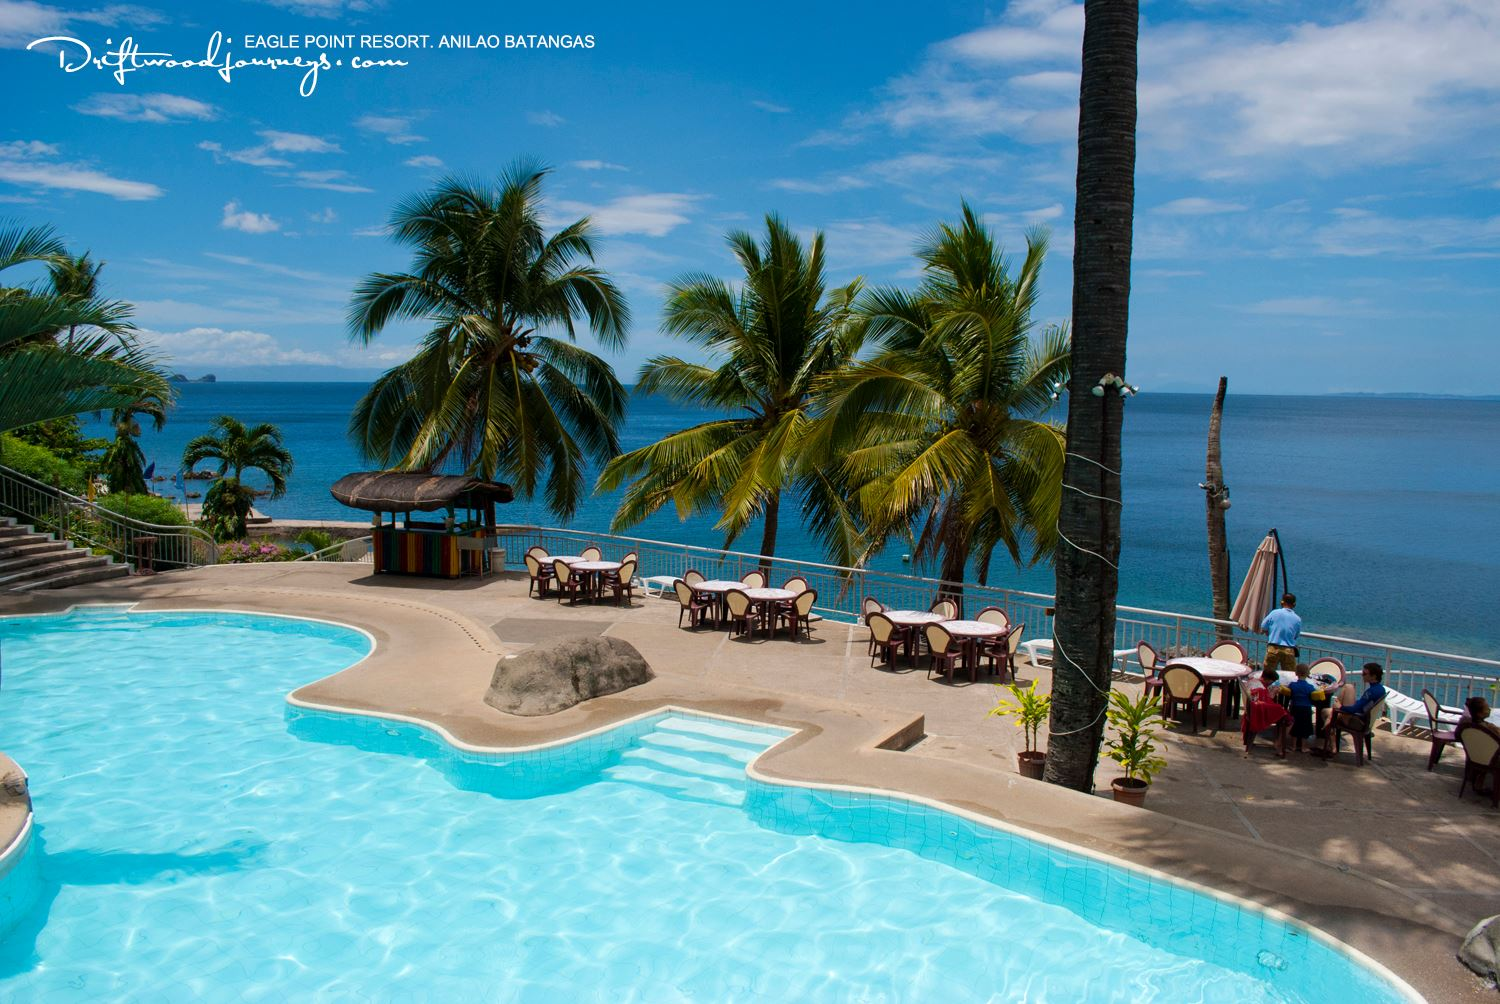 Eagle Point Resort Affordable Resorts In Batangas With Swimming Pool 01